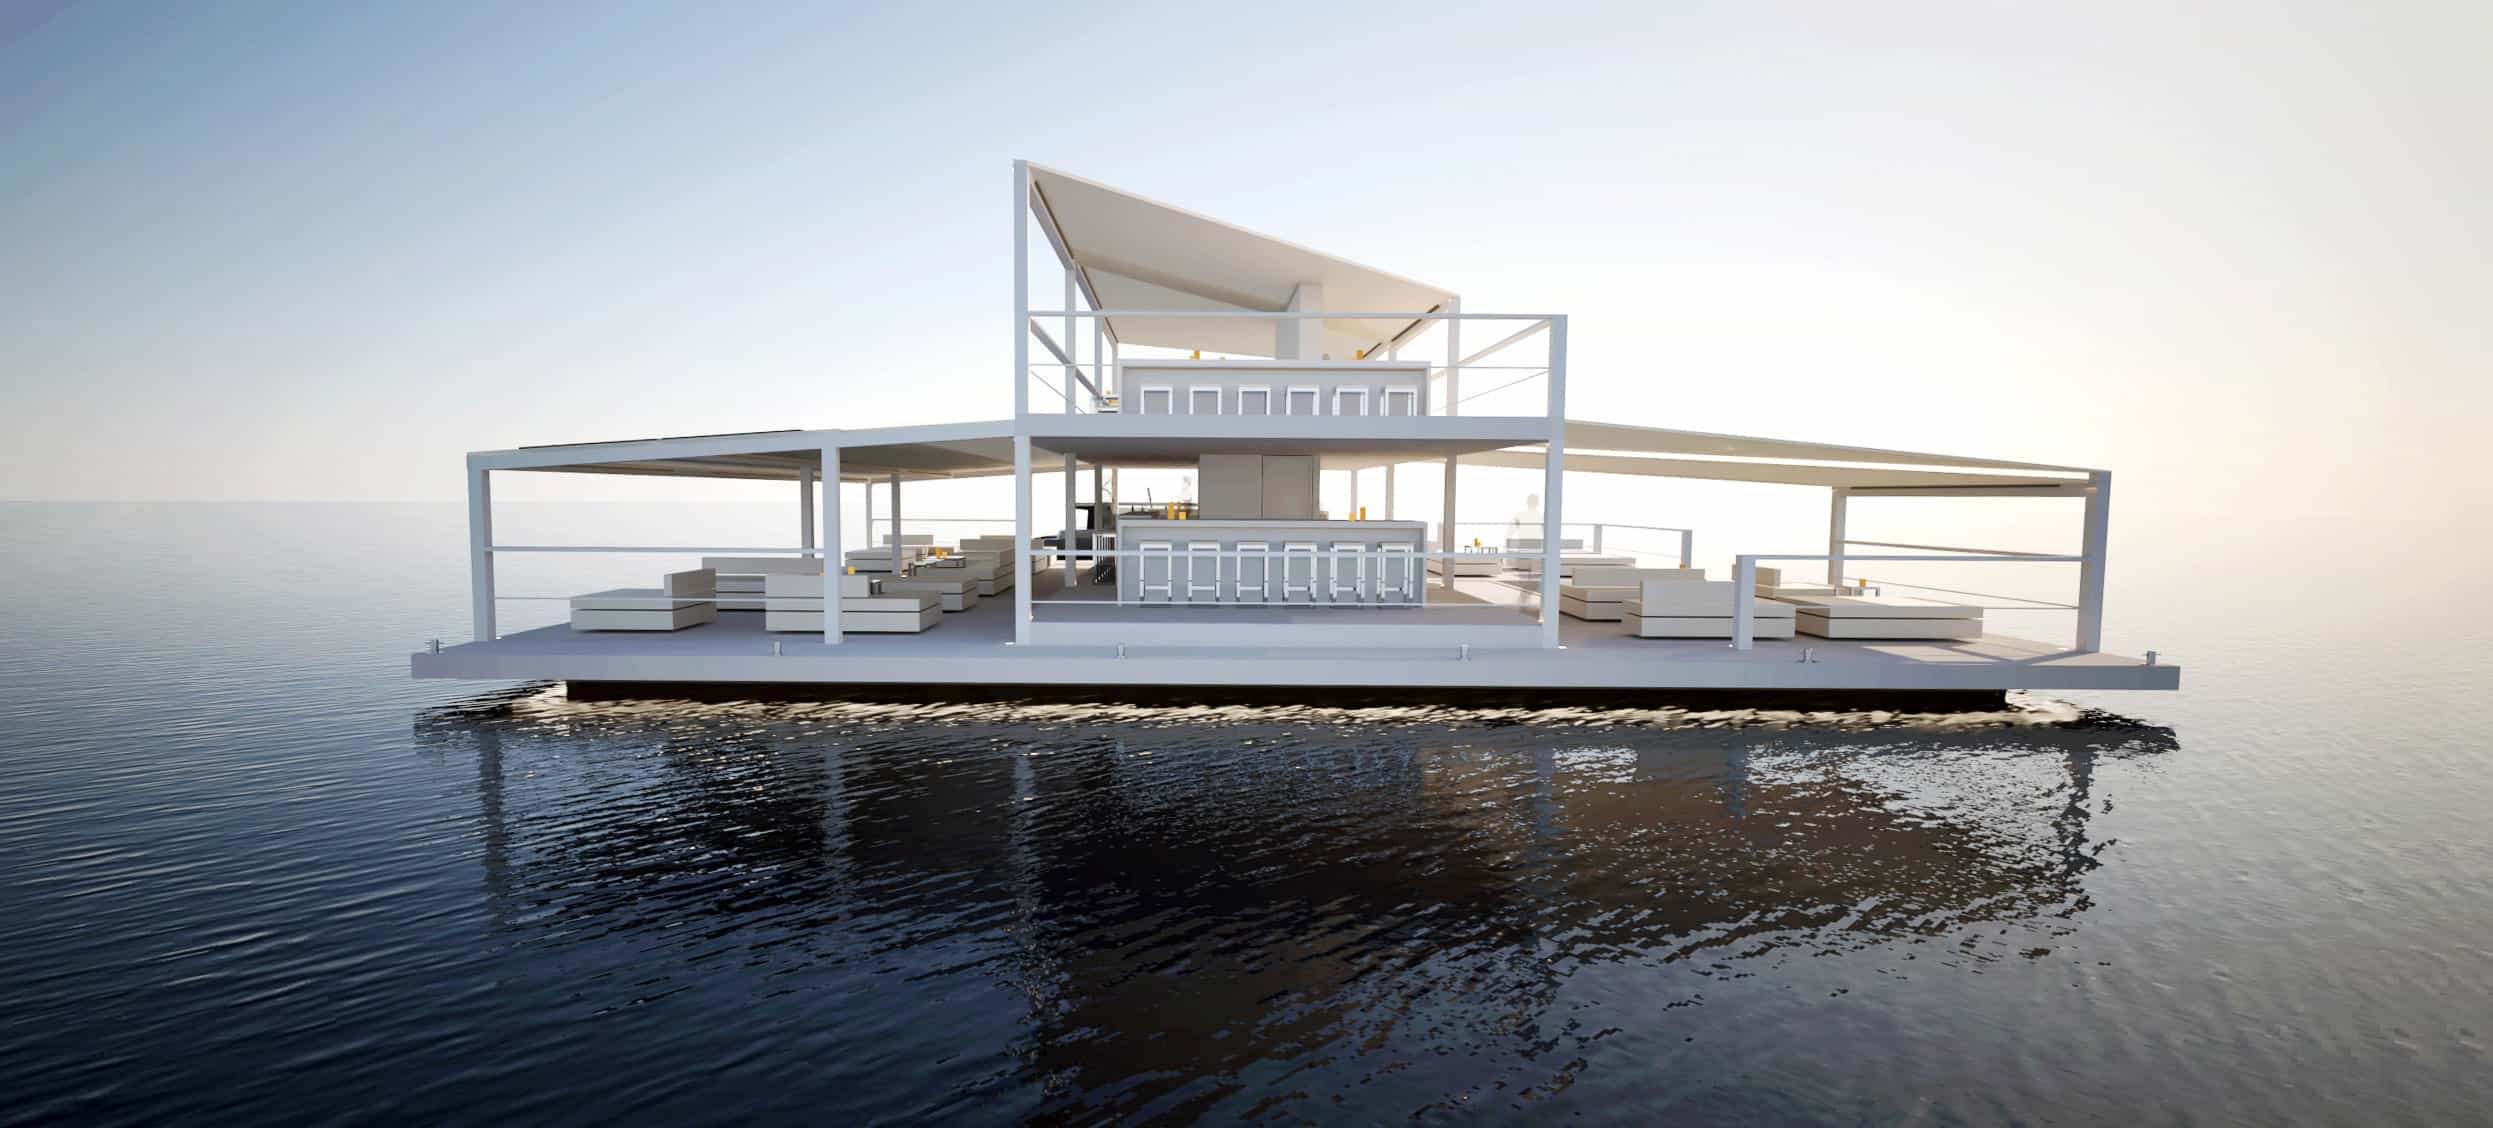 Floating bar by Soel Yachts